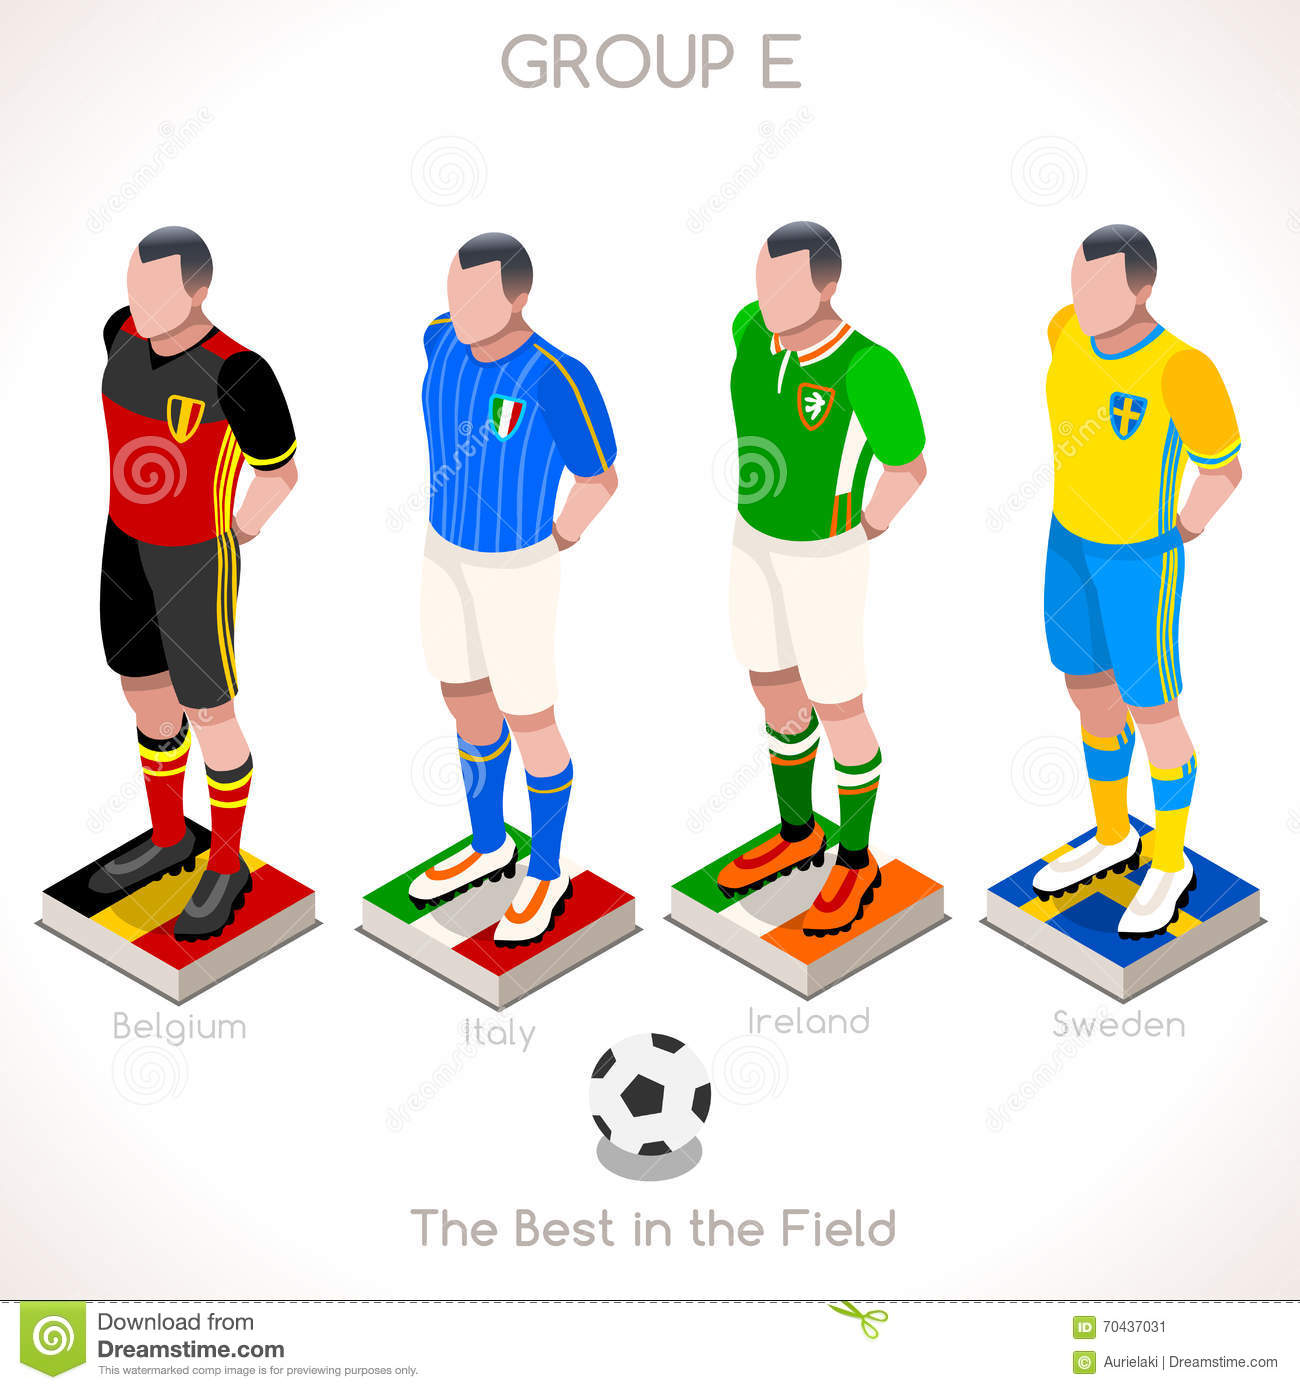 UEFA EURO 2016 Group E Teams,